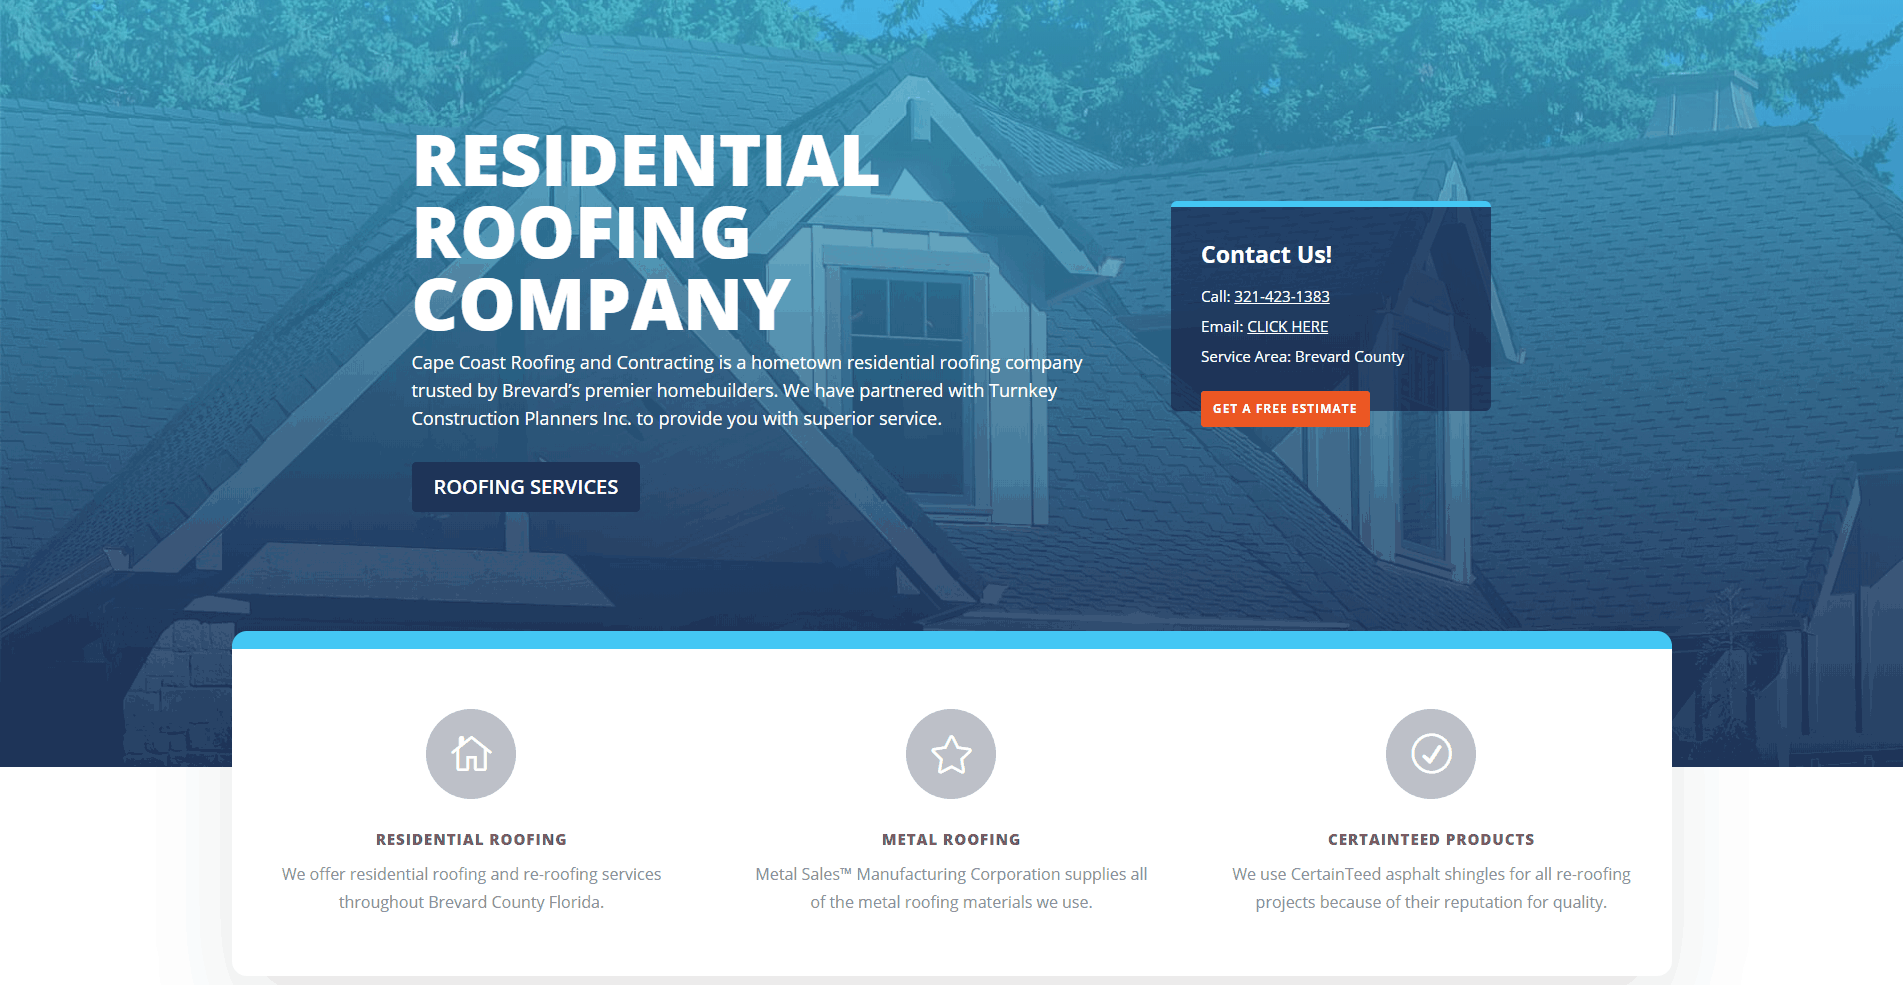 Cape Coast Roofing Home Page Hero Section